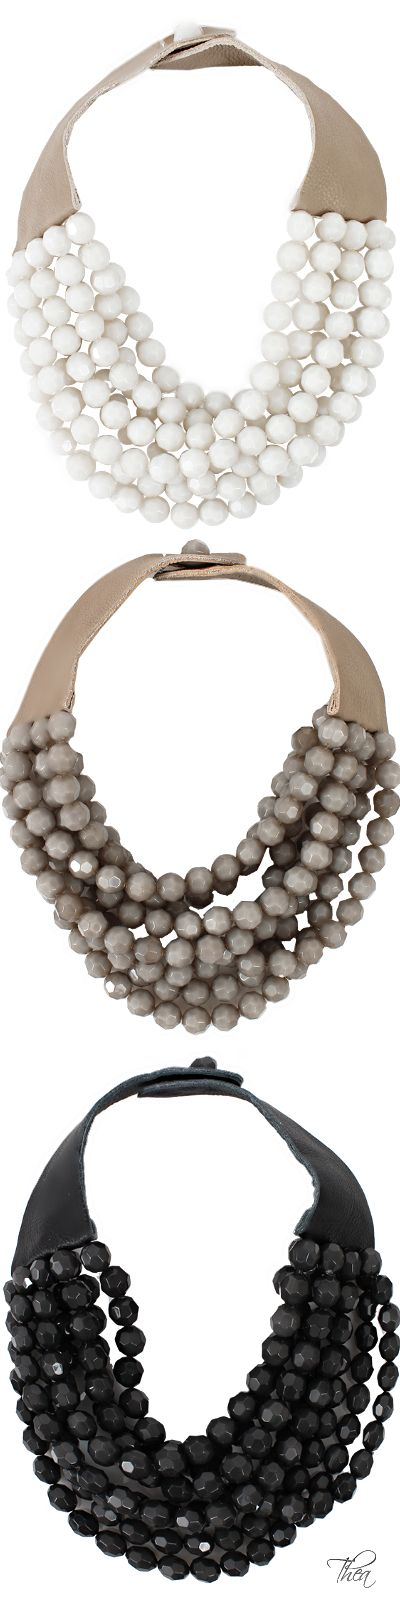 Safari Chic ● Fairchild Baldwin, Bella Beaded Necklace